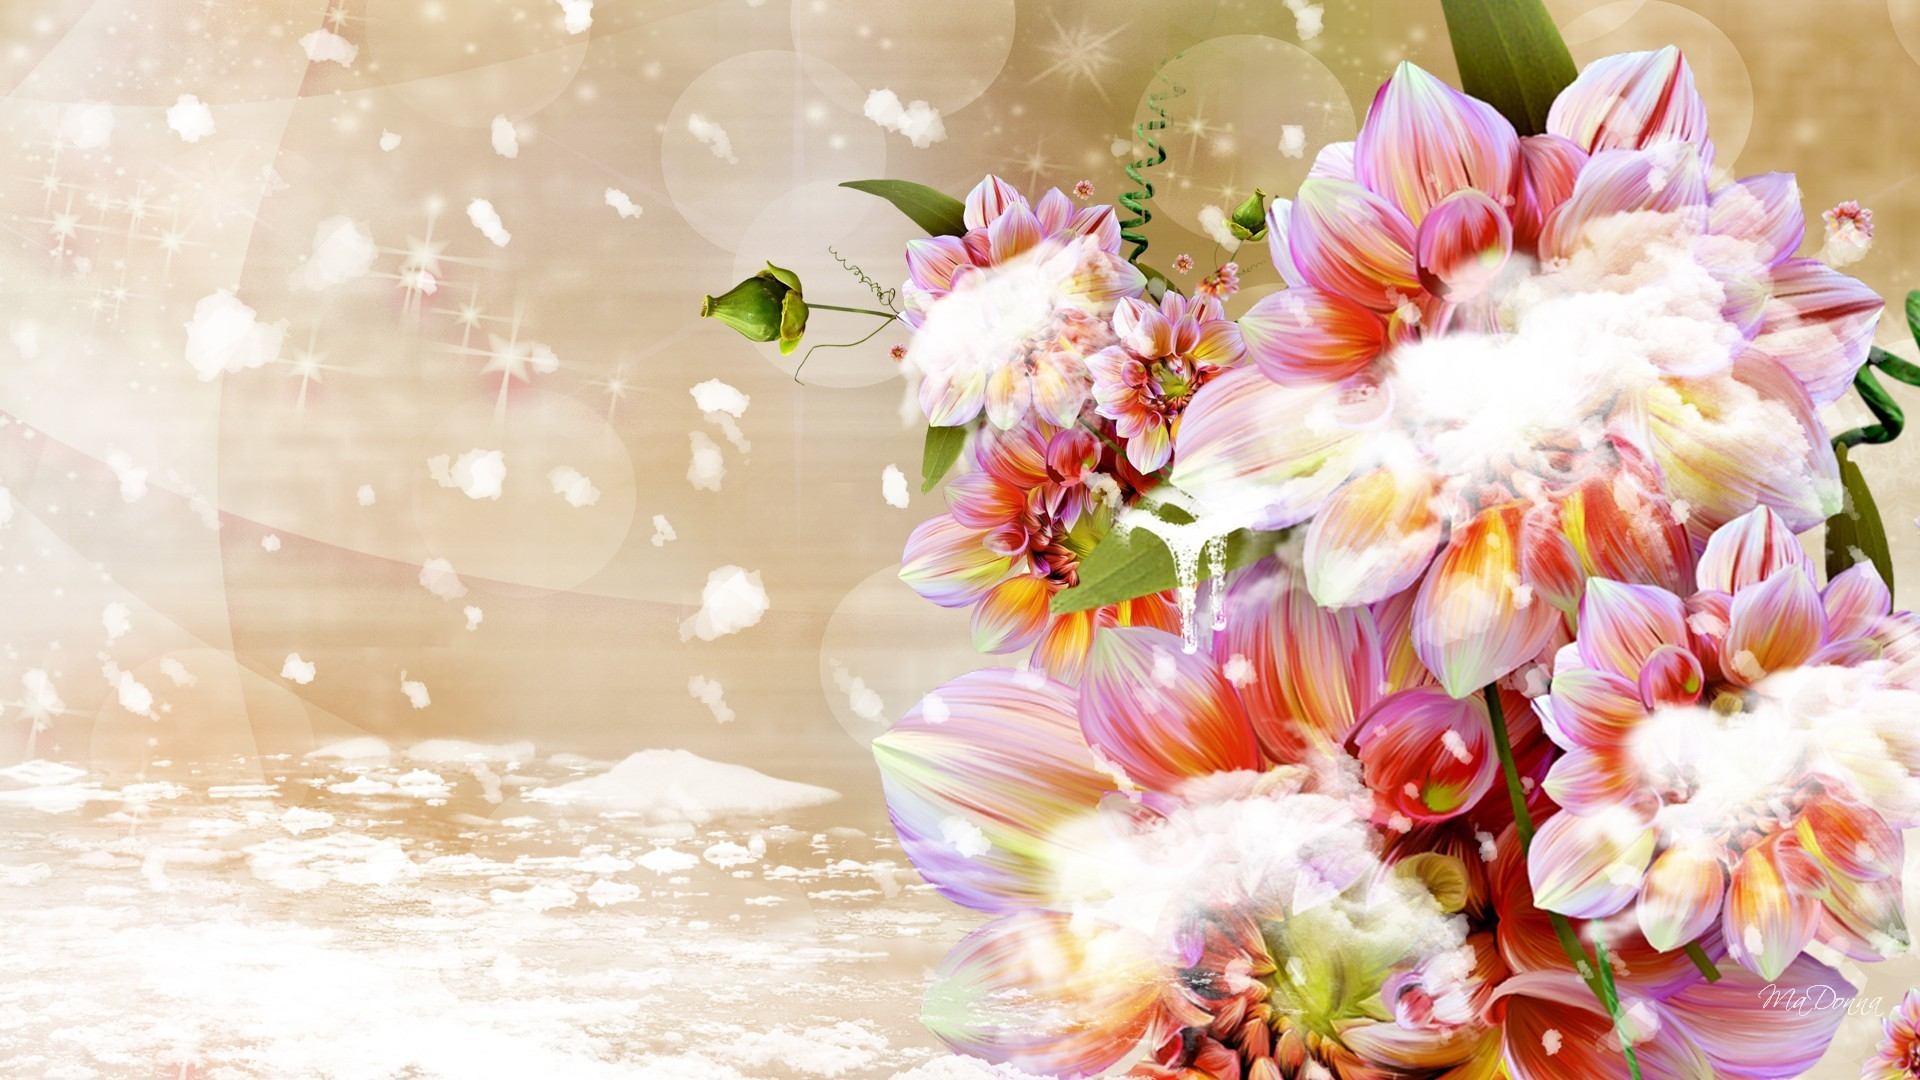 Snowing Flowers Autumn Cold Pink Fall Fleurs Snow Dahlia Winter Icicle Ice Flower  Wallpaper Pictures